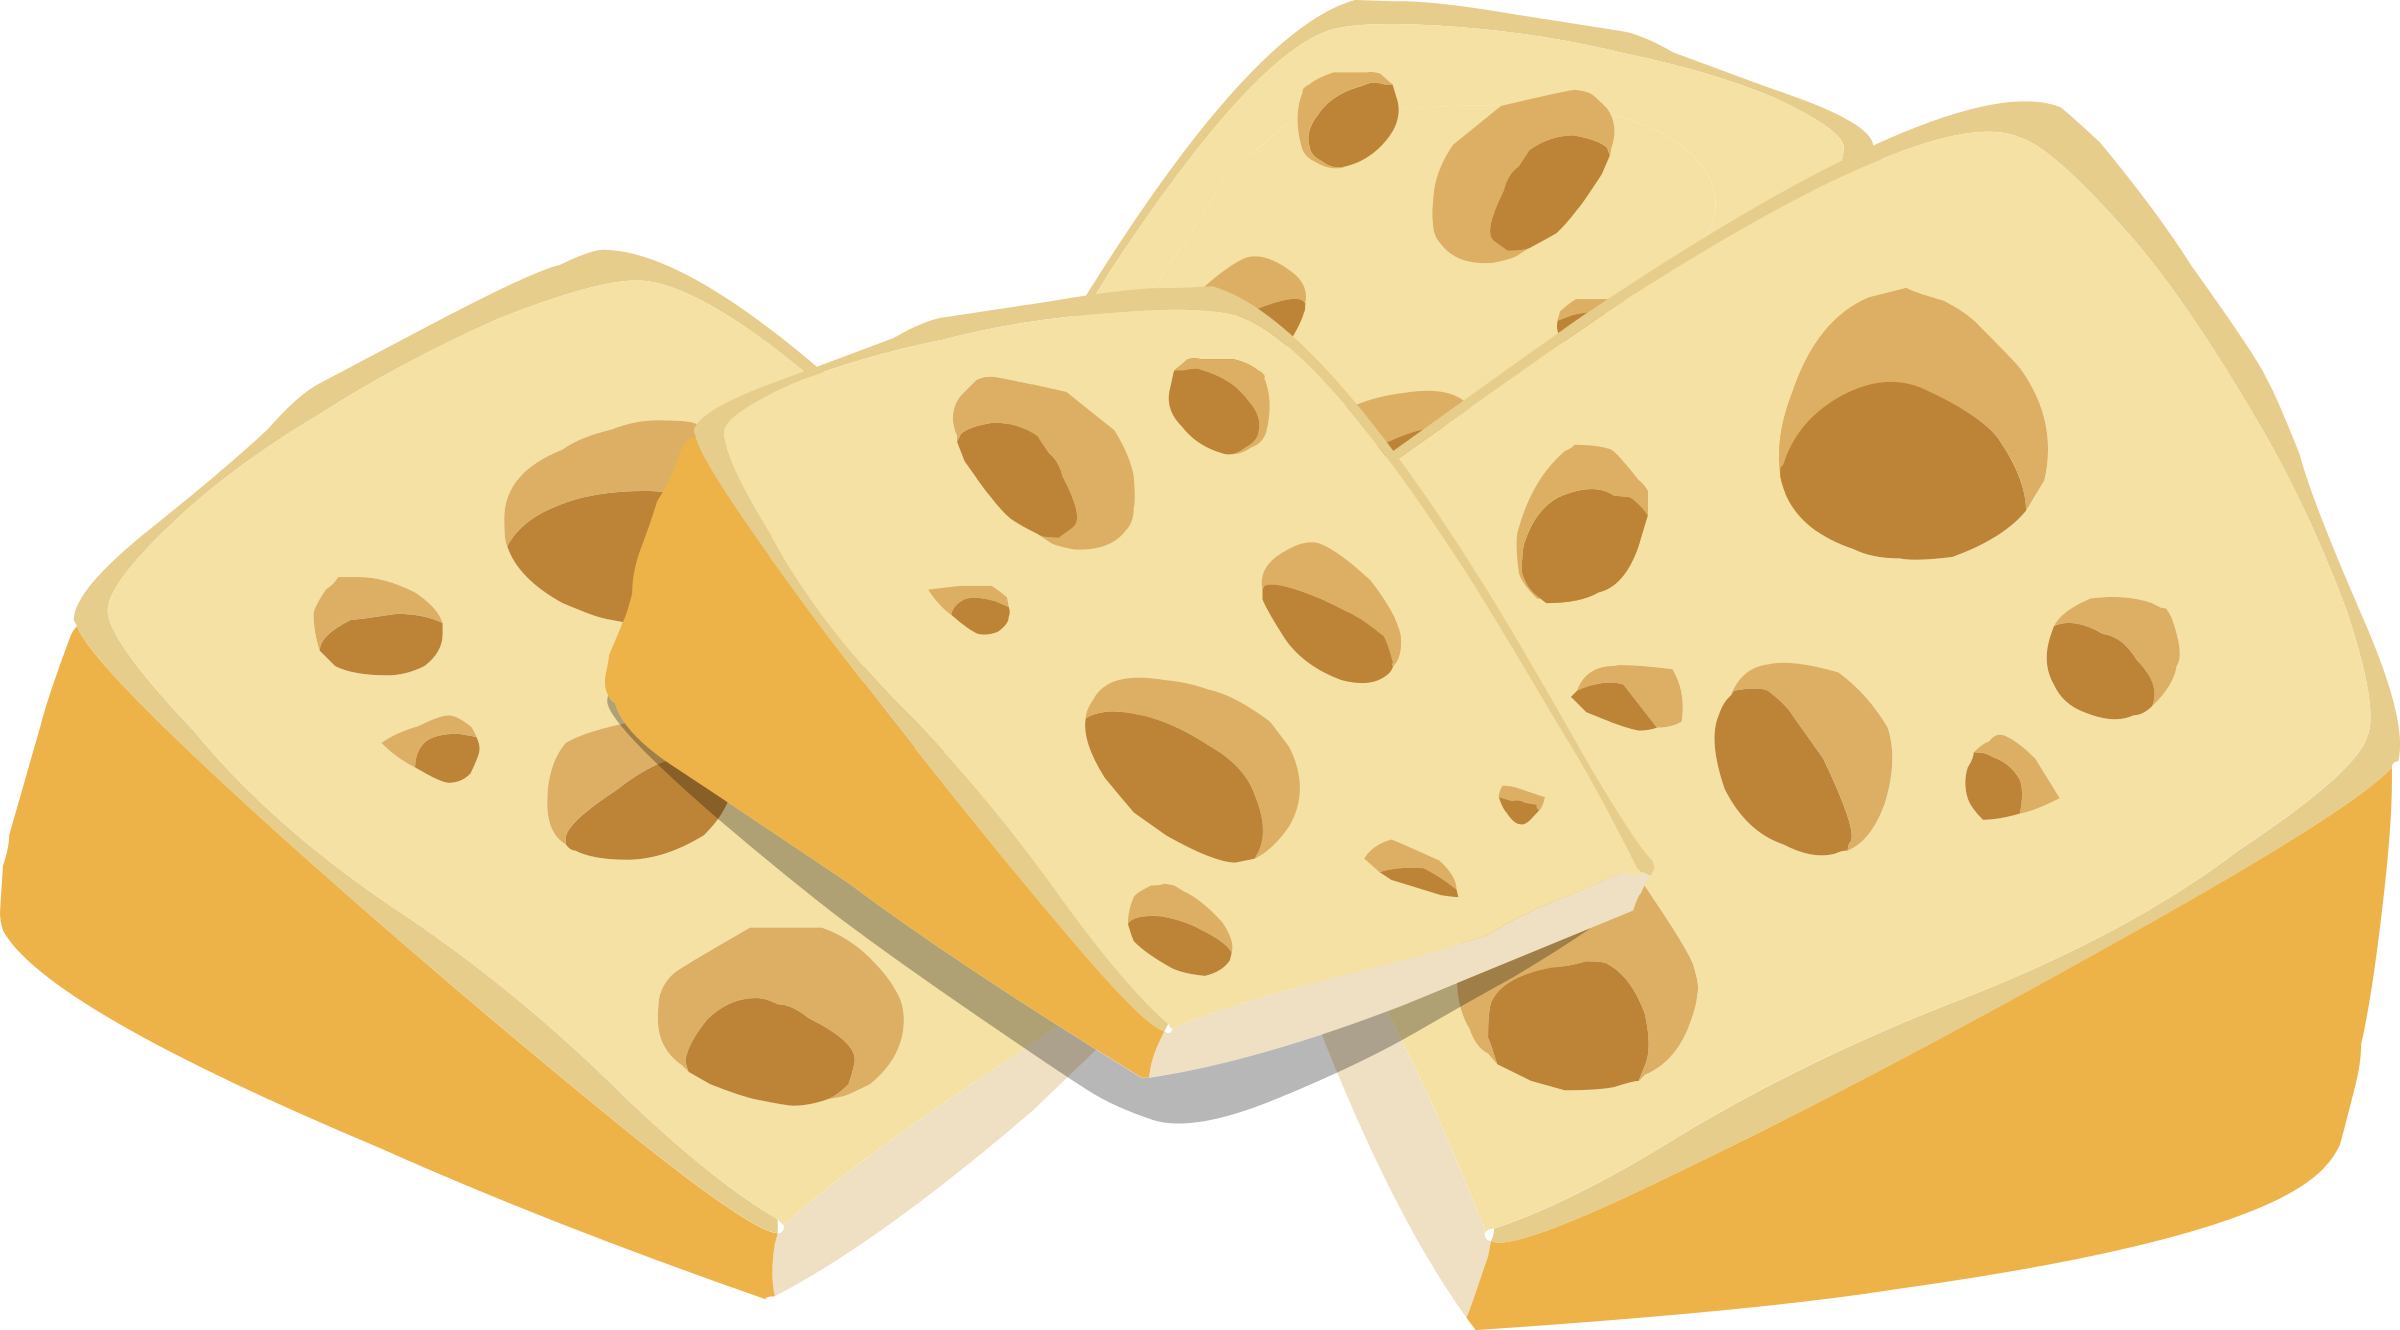 Food Cheese by glitch